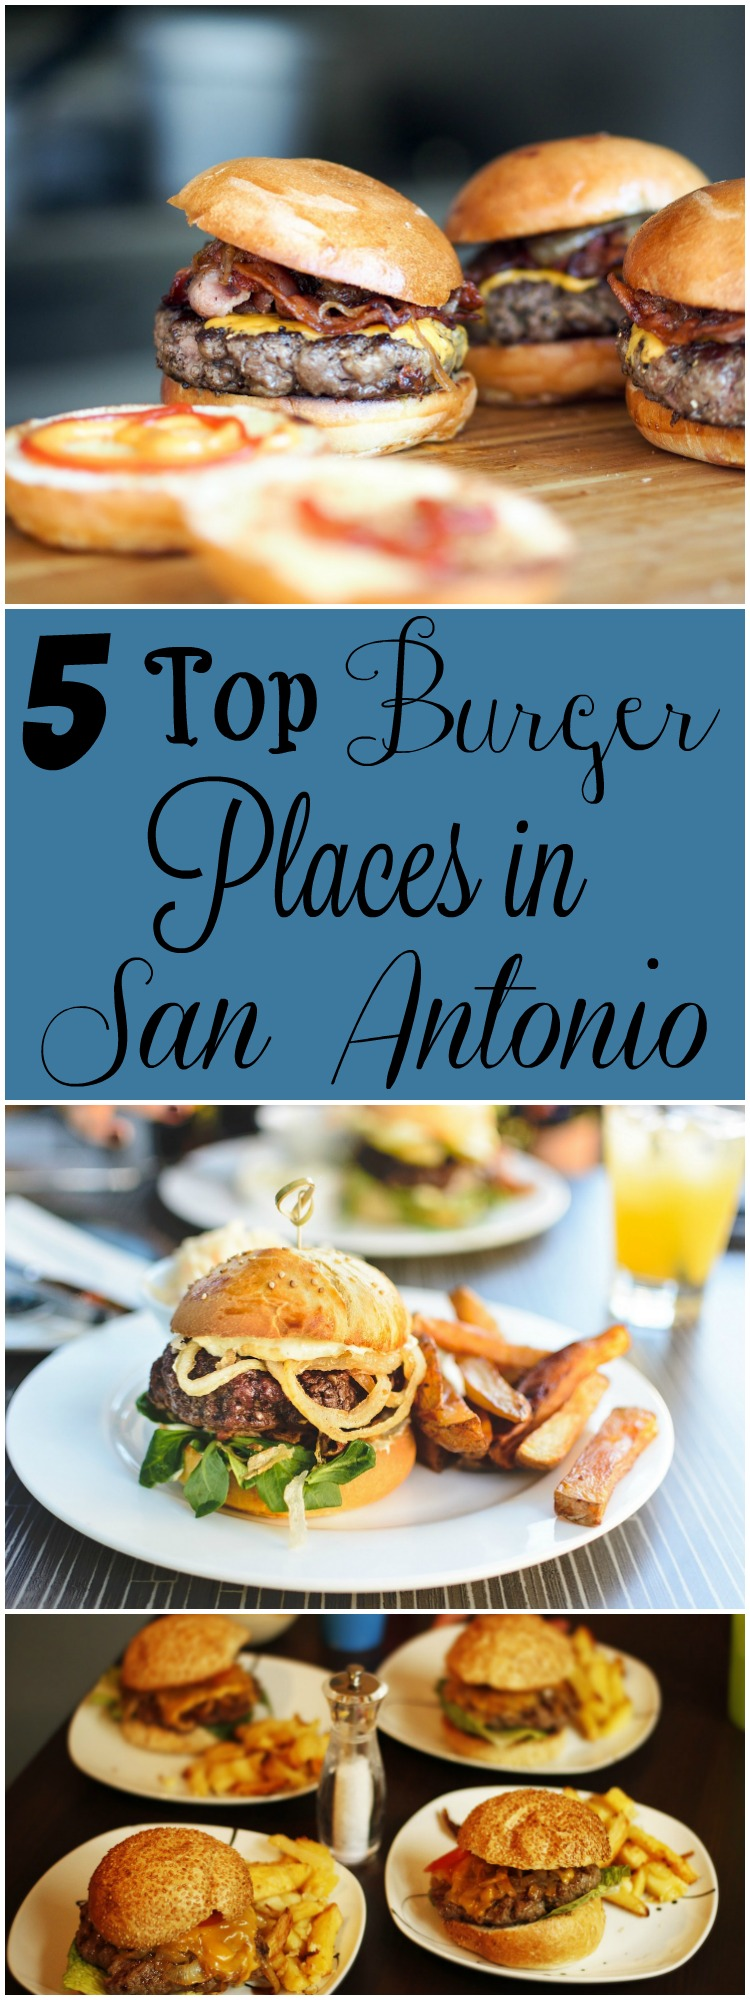 5 Top Burger Places in San Antonio